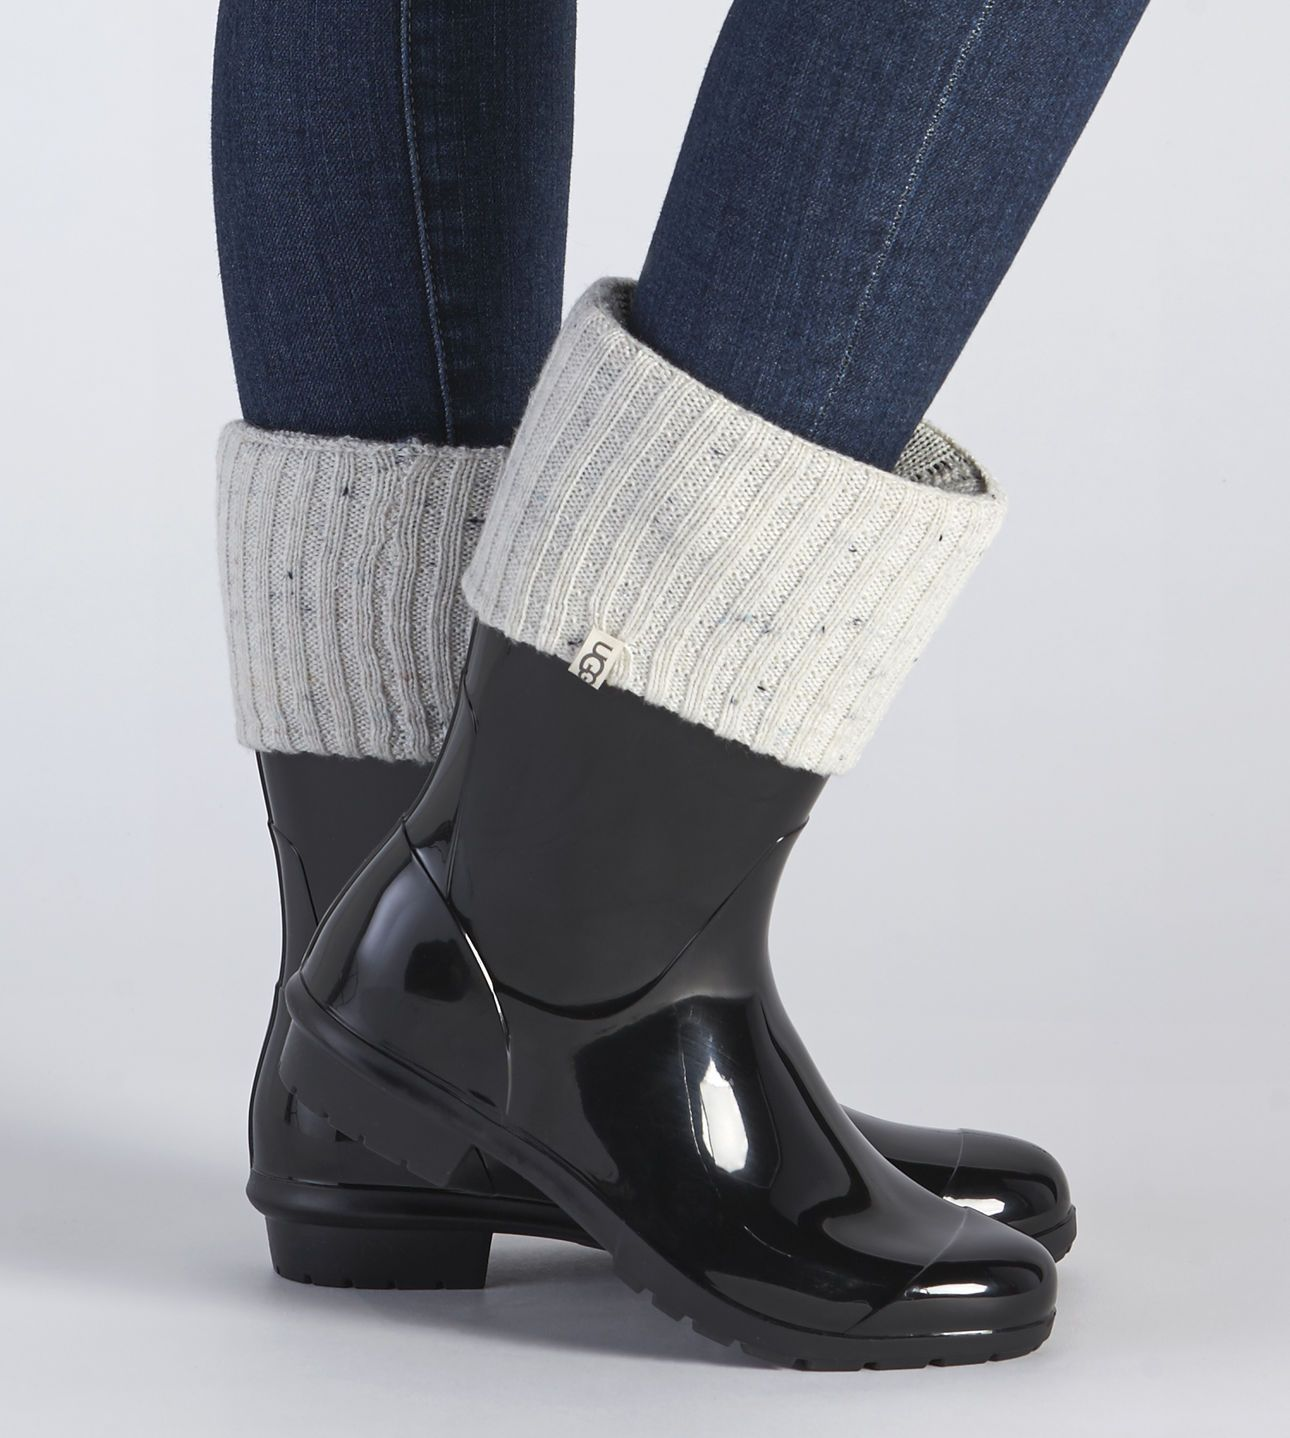 90d5cfb432b3 Women s Share this product Sienna Short Rainboot Sock in 2019